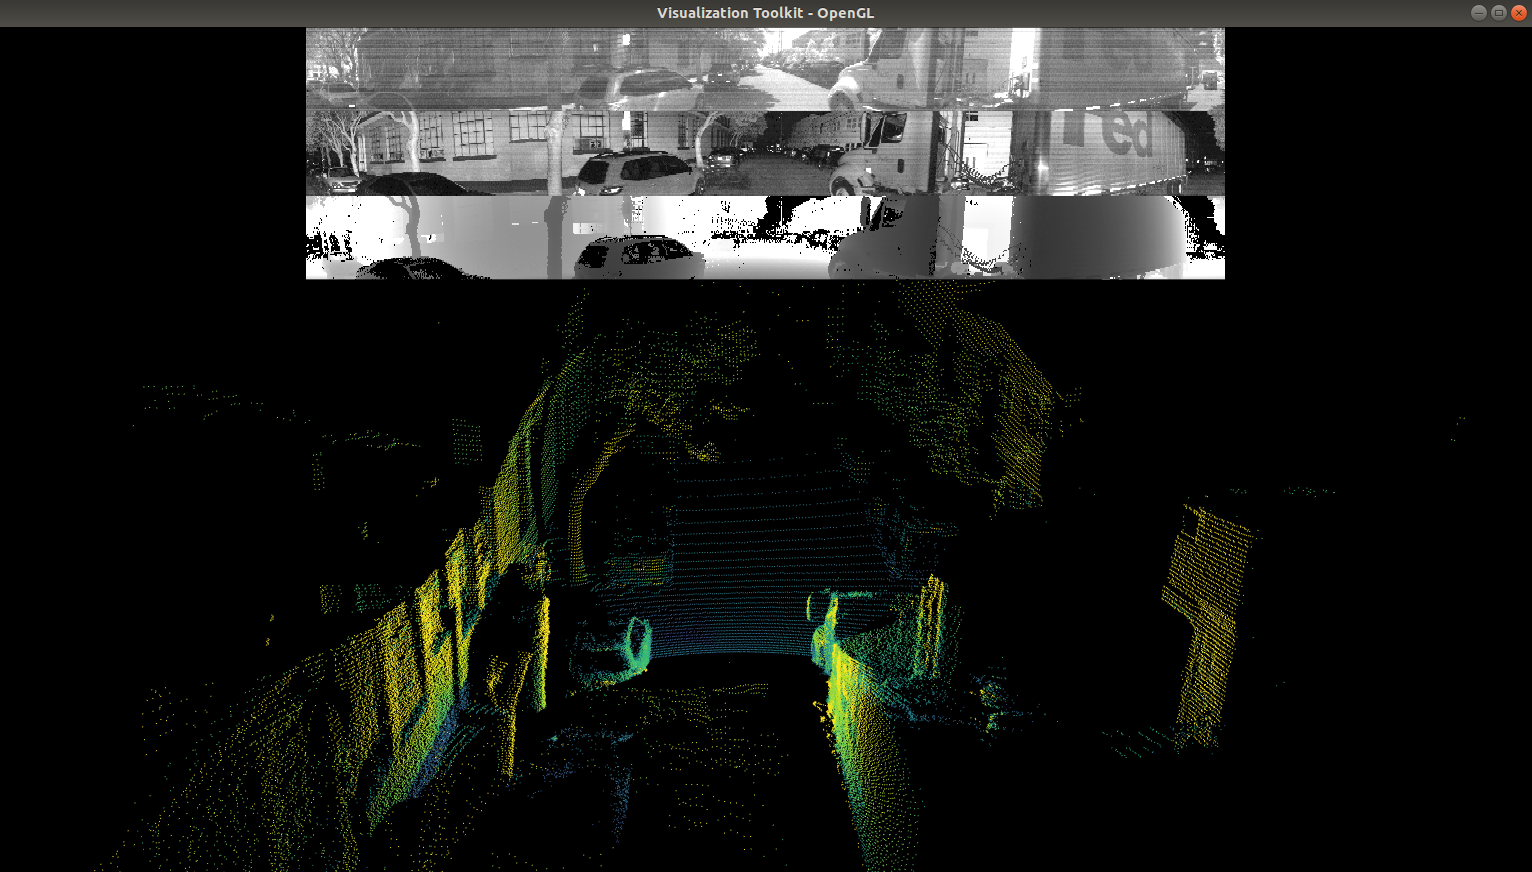 Simulating an Ouster OS-1 lidar Sensor in ROS Gazebo and RViz